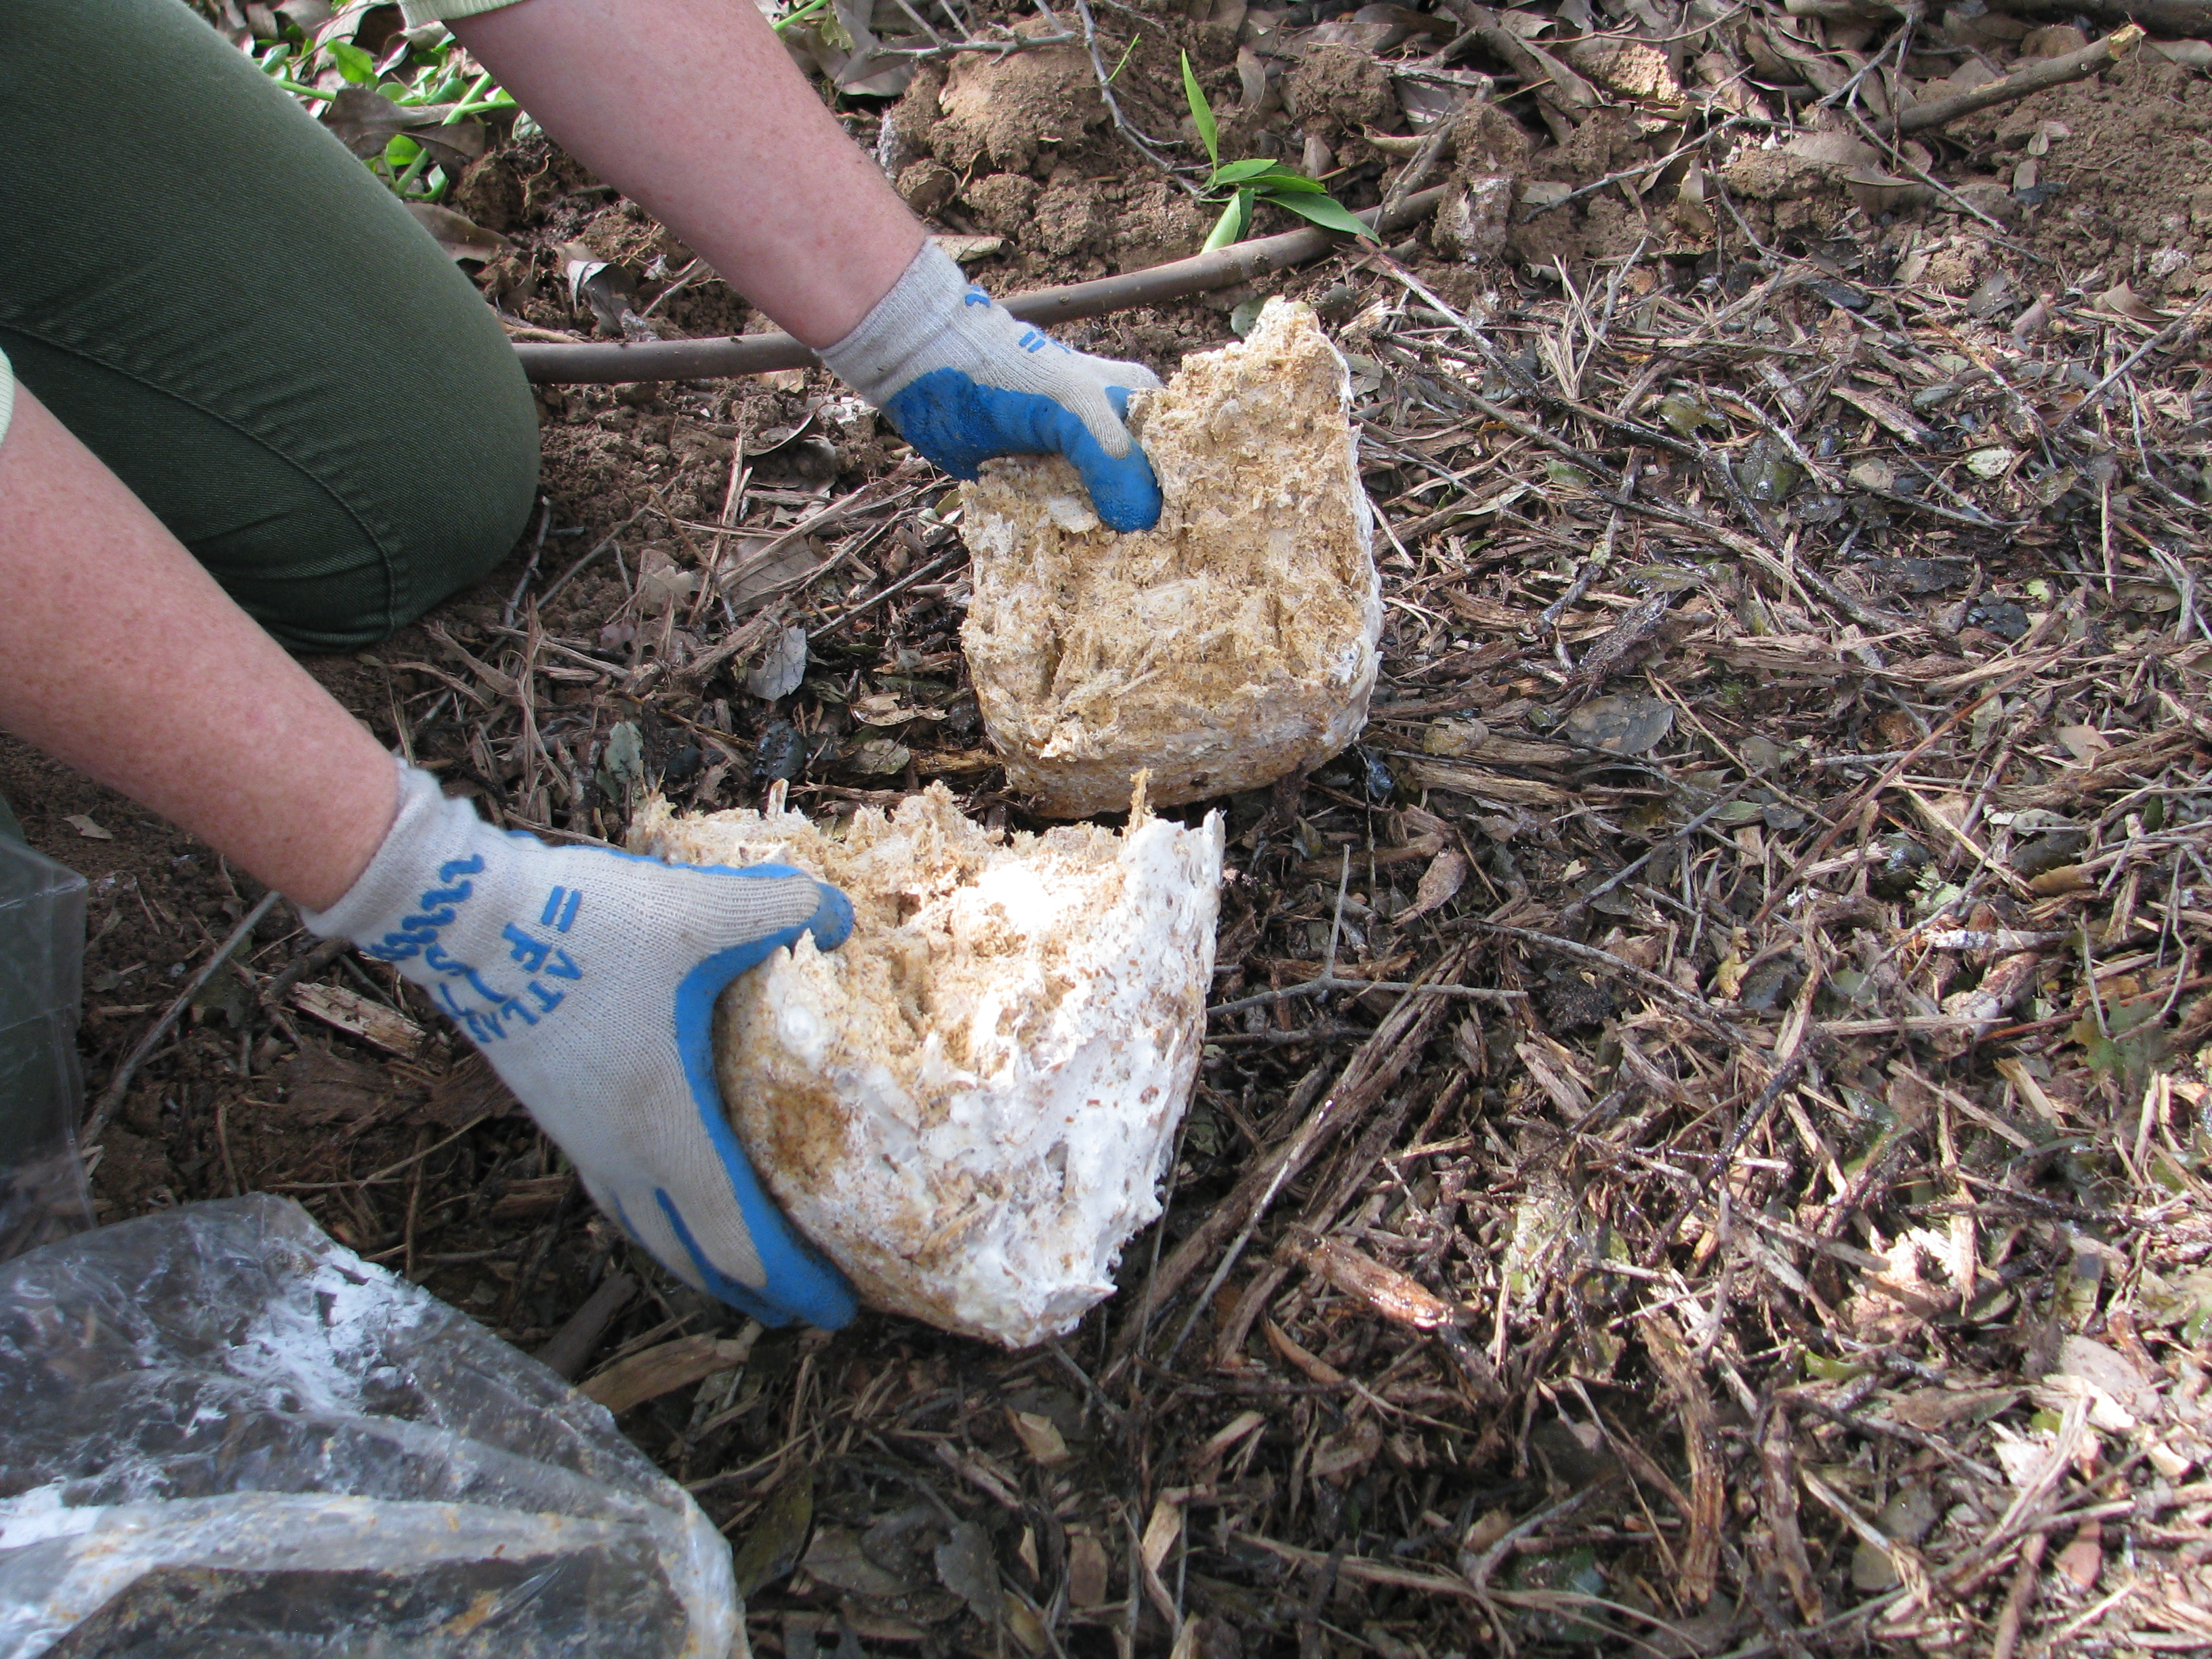 More Spores: Planting Garden Giant and Shaggy Mane Mushrooms ...